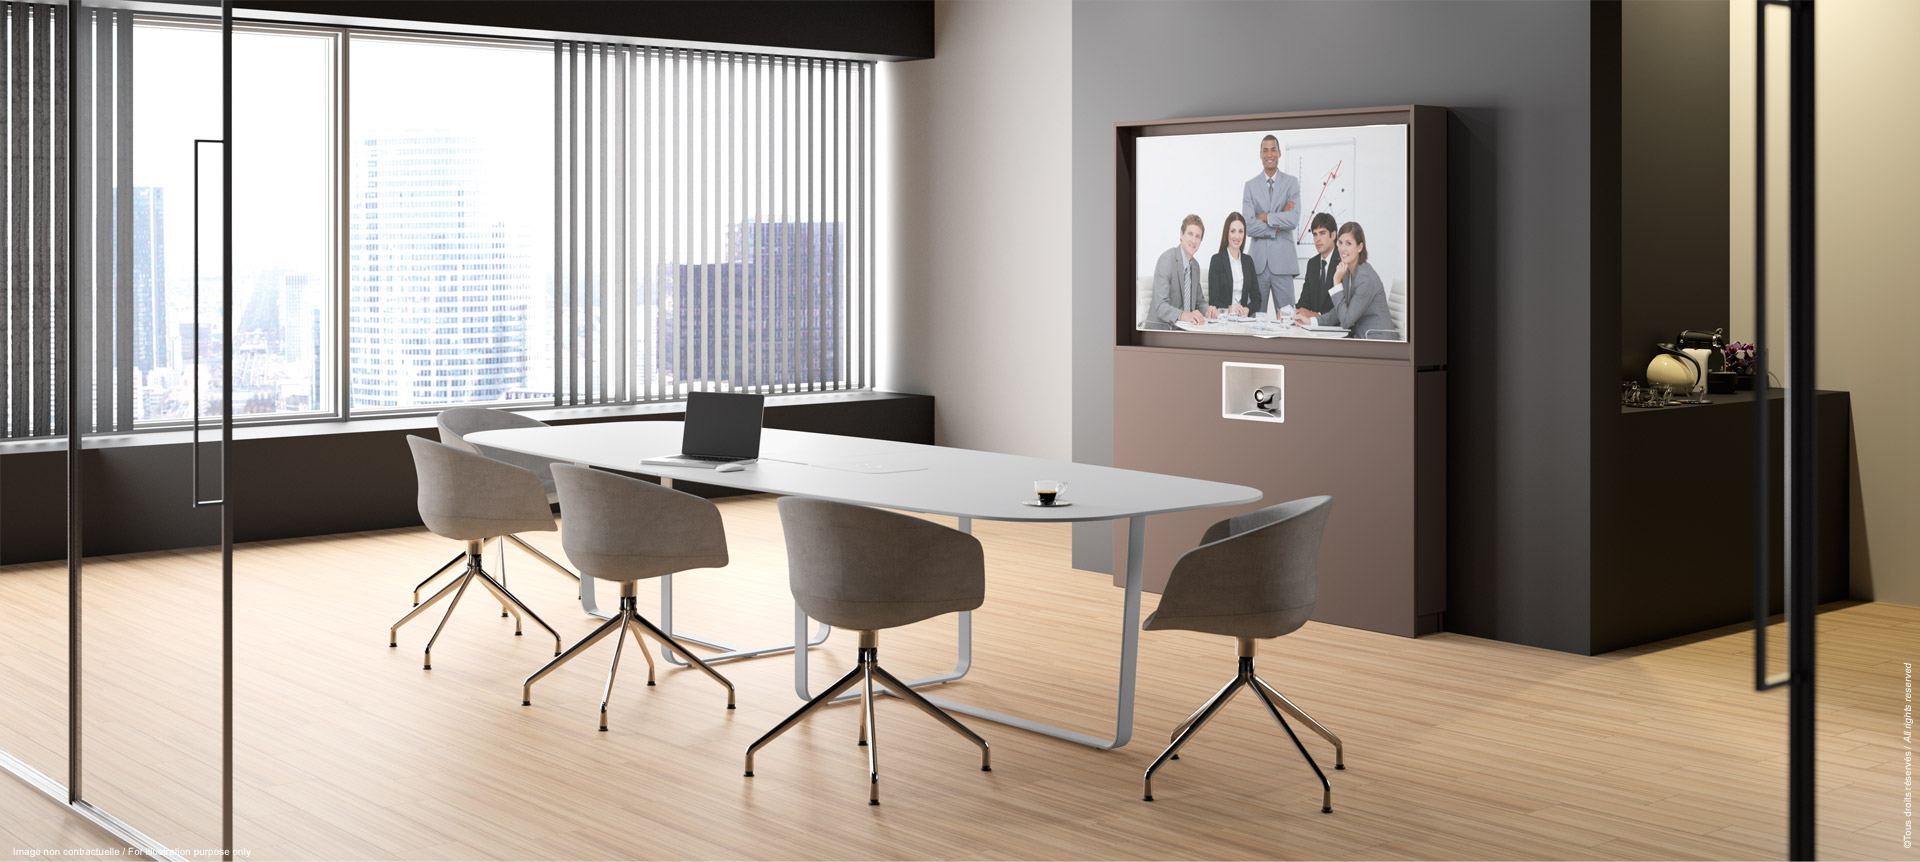 WEMEET REMOTE - Meeting or video-conference room